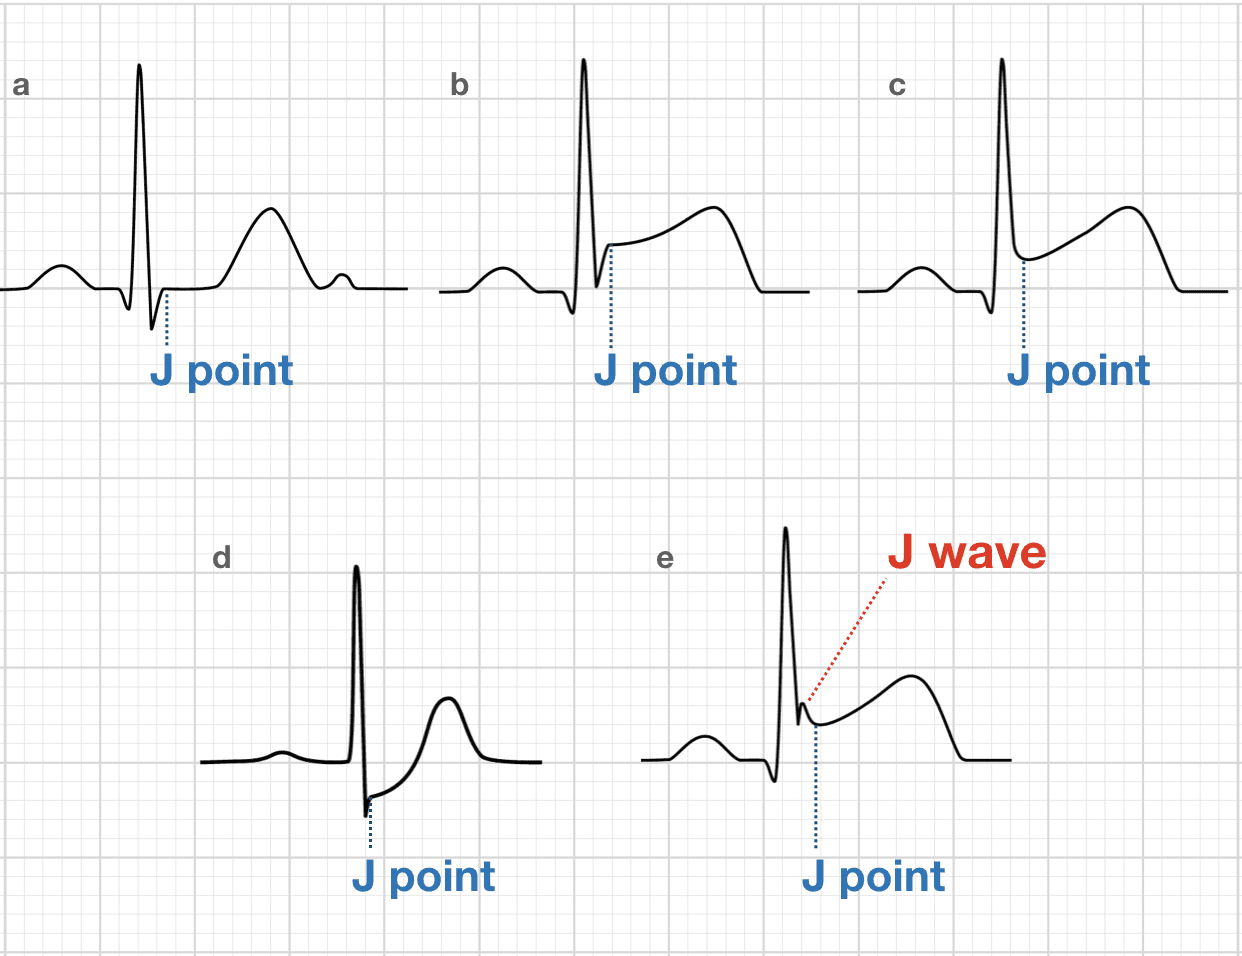 Ecg Exam Template Litfl Medical Blog Ecg Library Basics